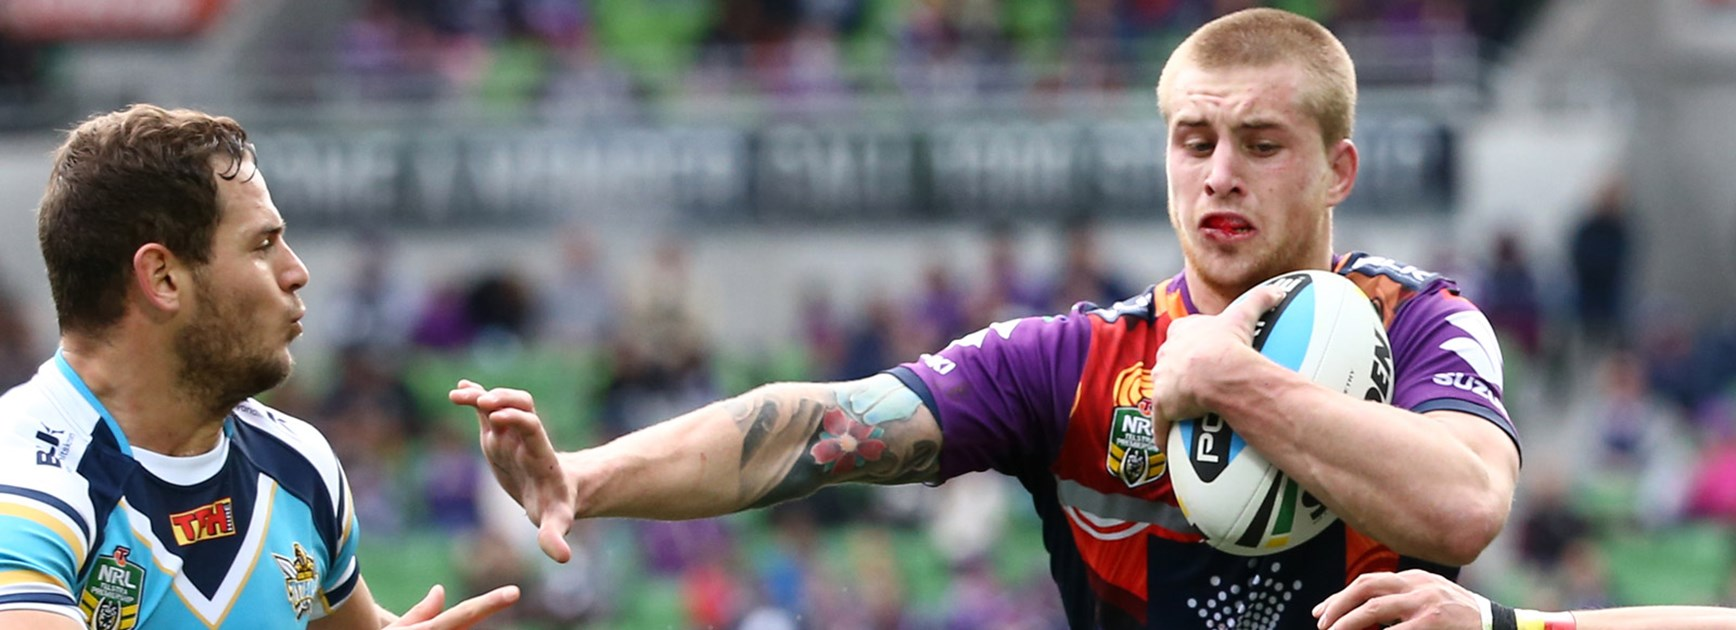 Cameron Munster was superb in Melbourne's Round 22 win over Gold Coast.